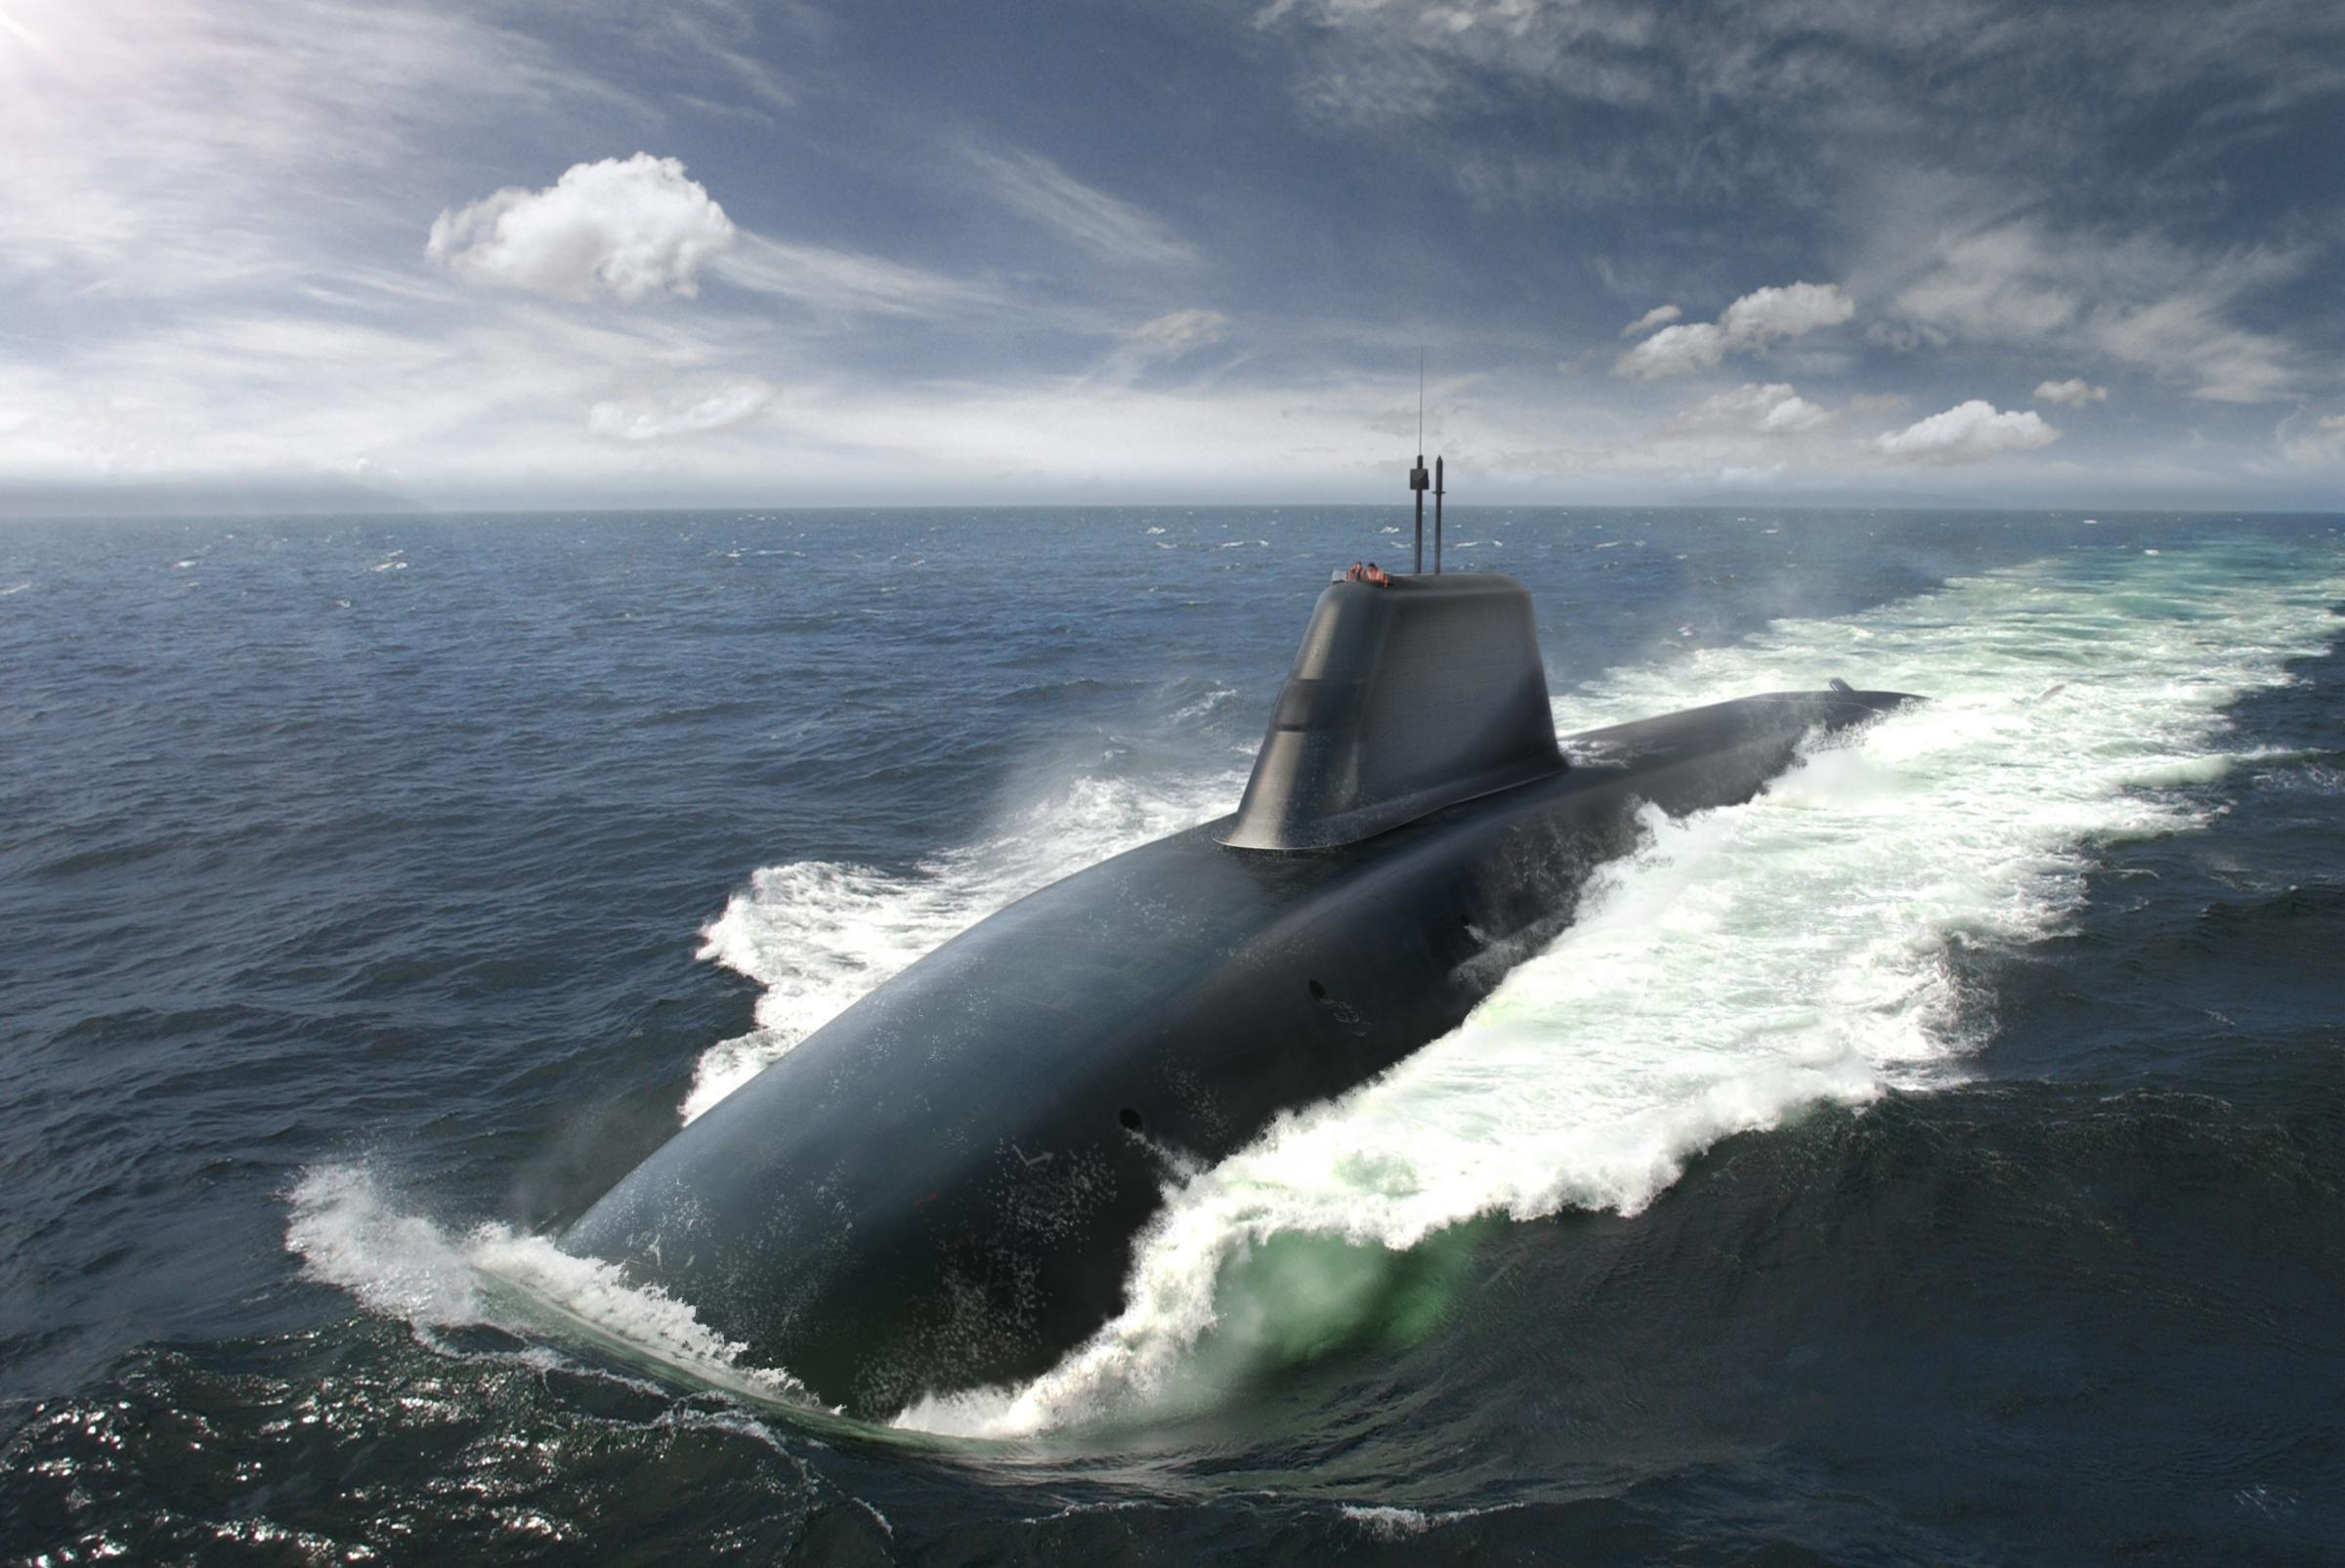 Glasgow firm wins £330m contract to build periscopes for nuclear submarines